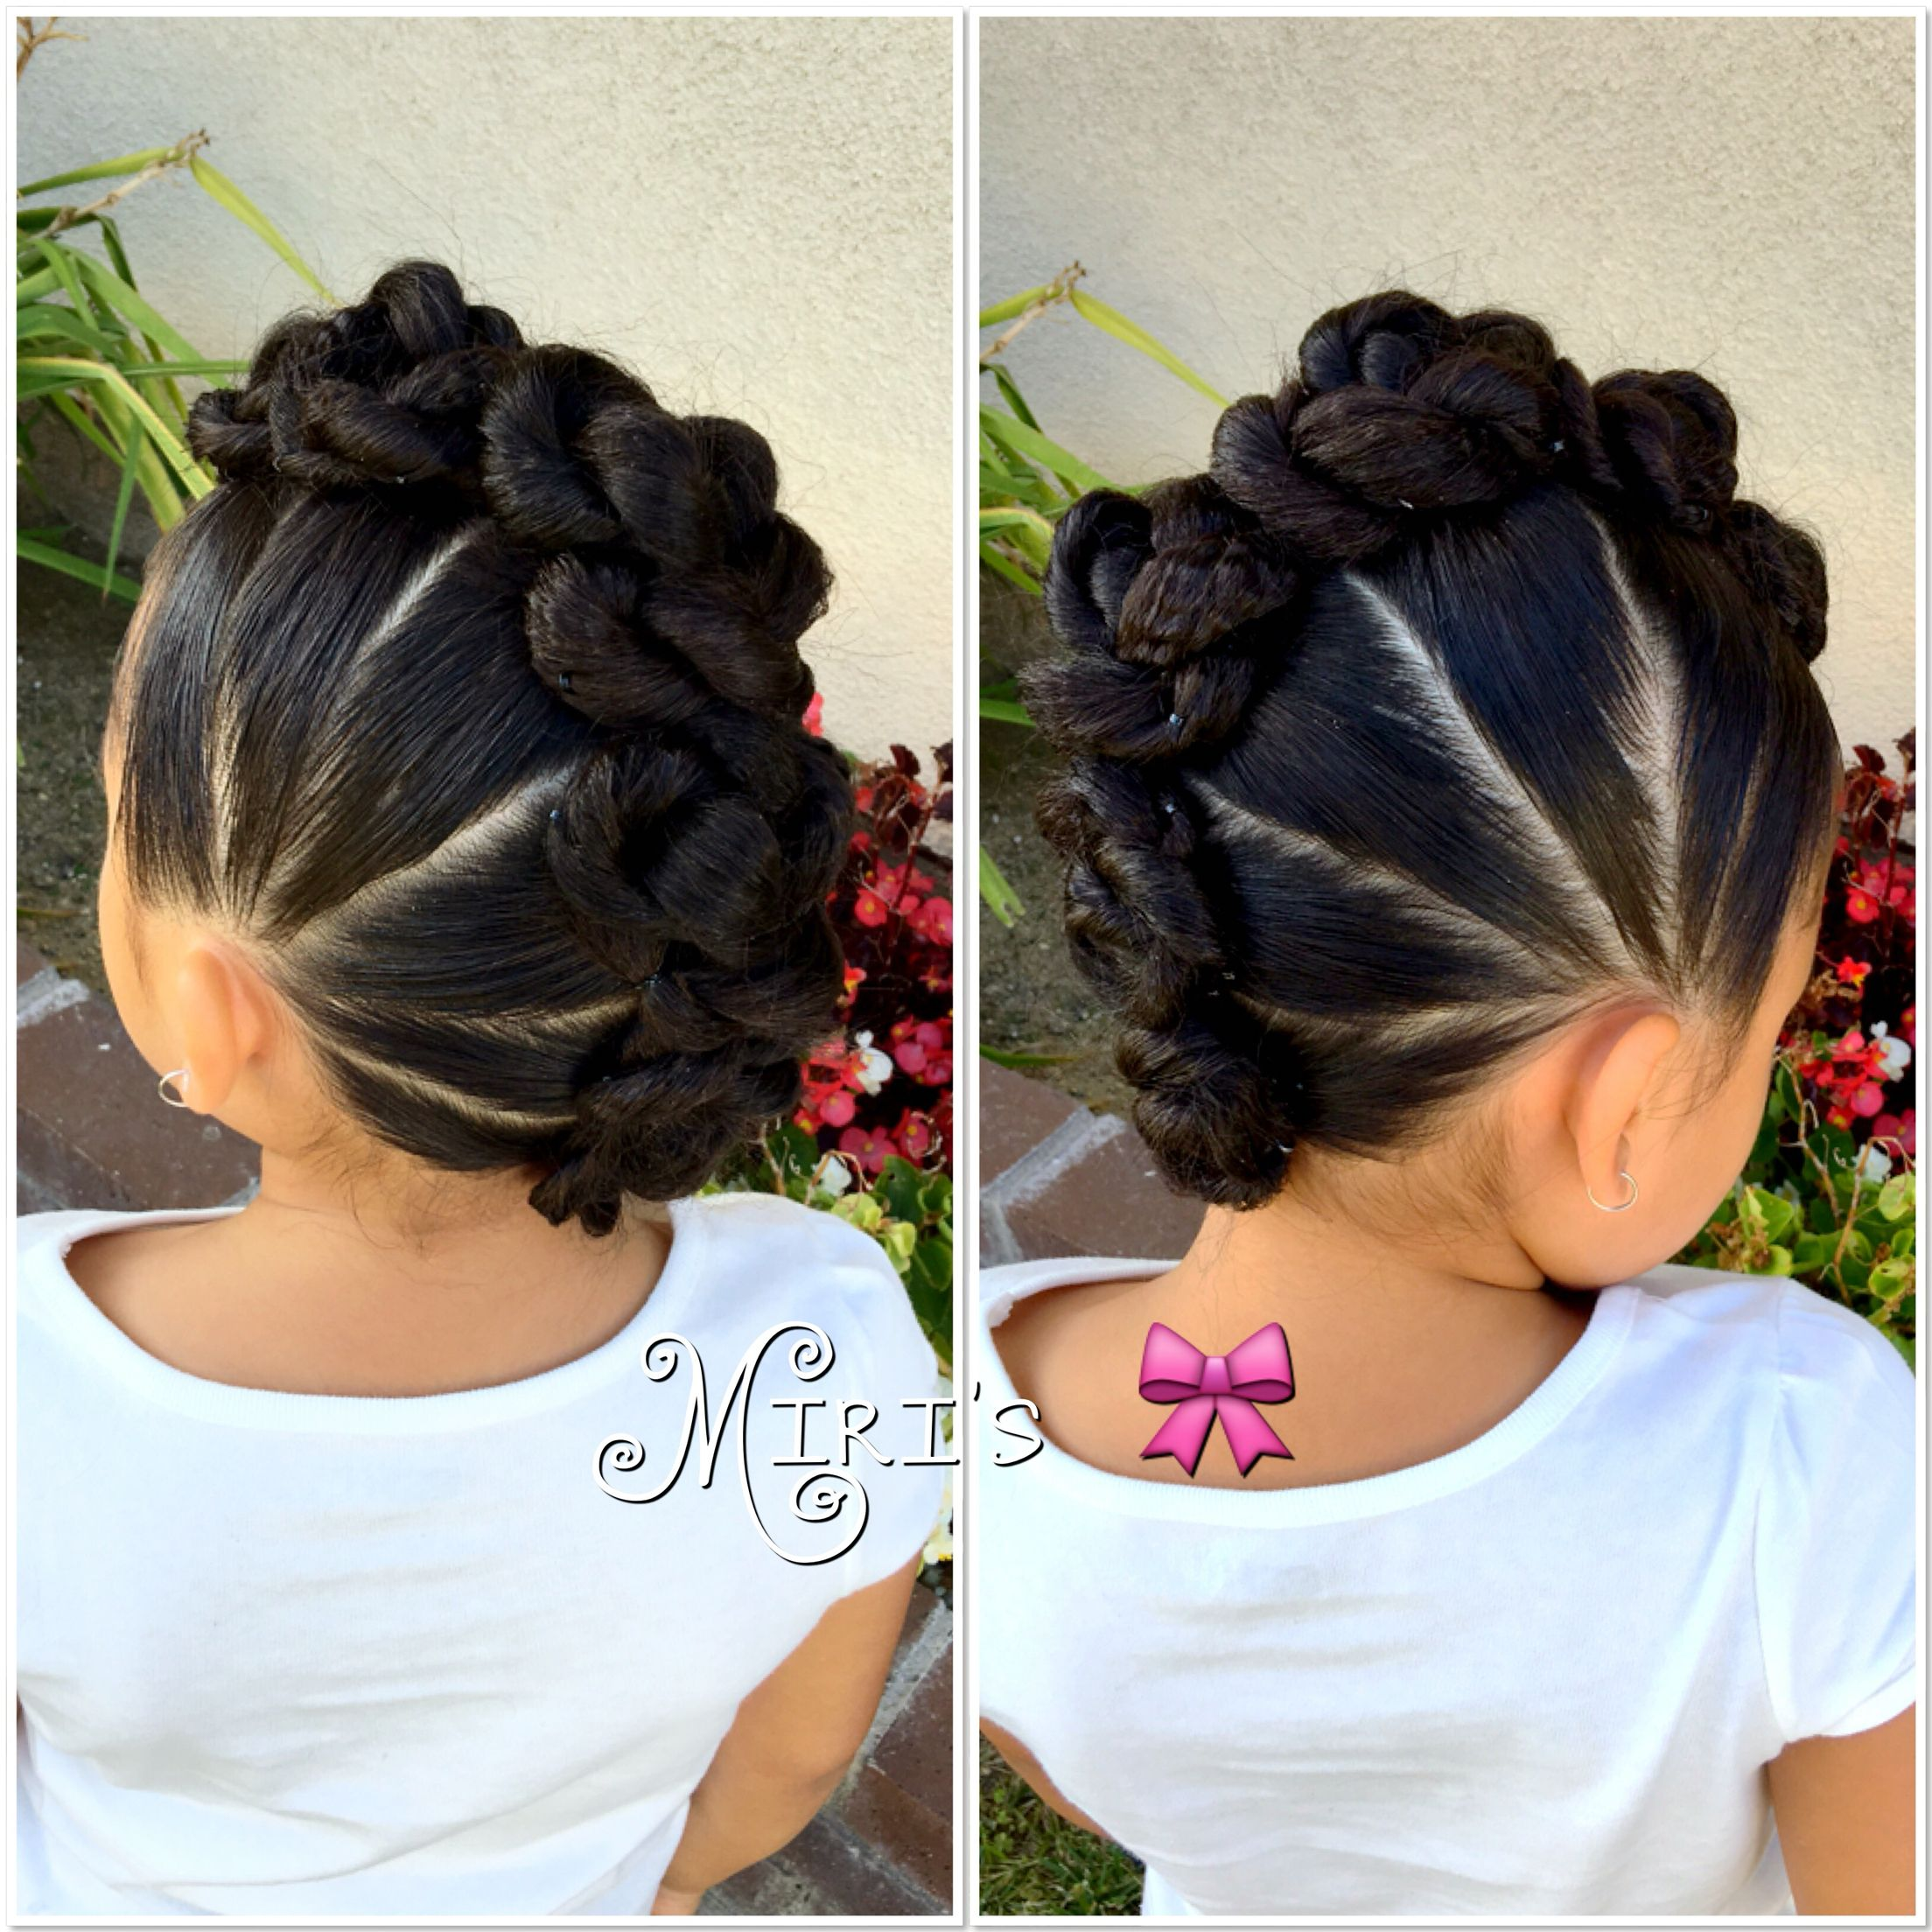 Twisties Hairstyles Brilliant Mohawk With Twists Hair Style For Little Girls  Hair Tips & Hair